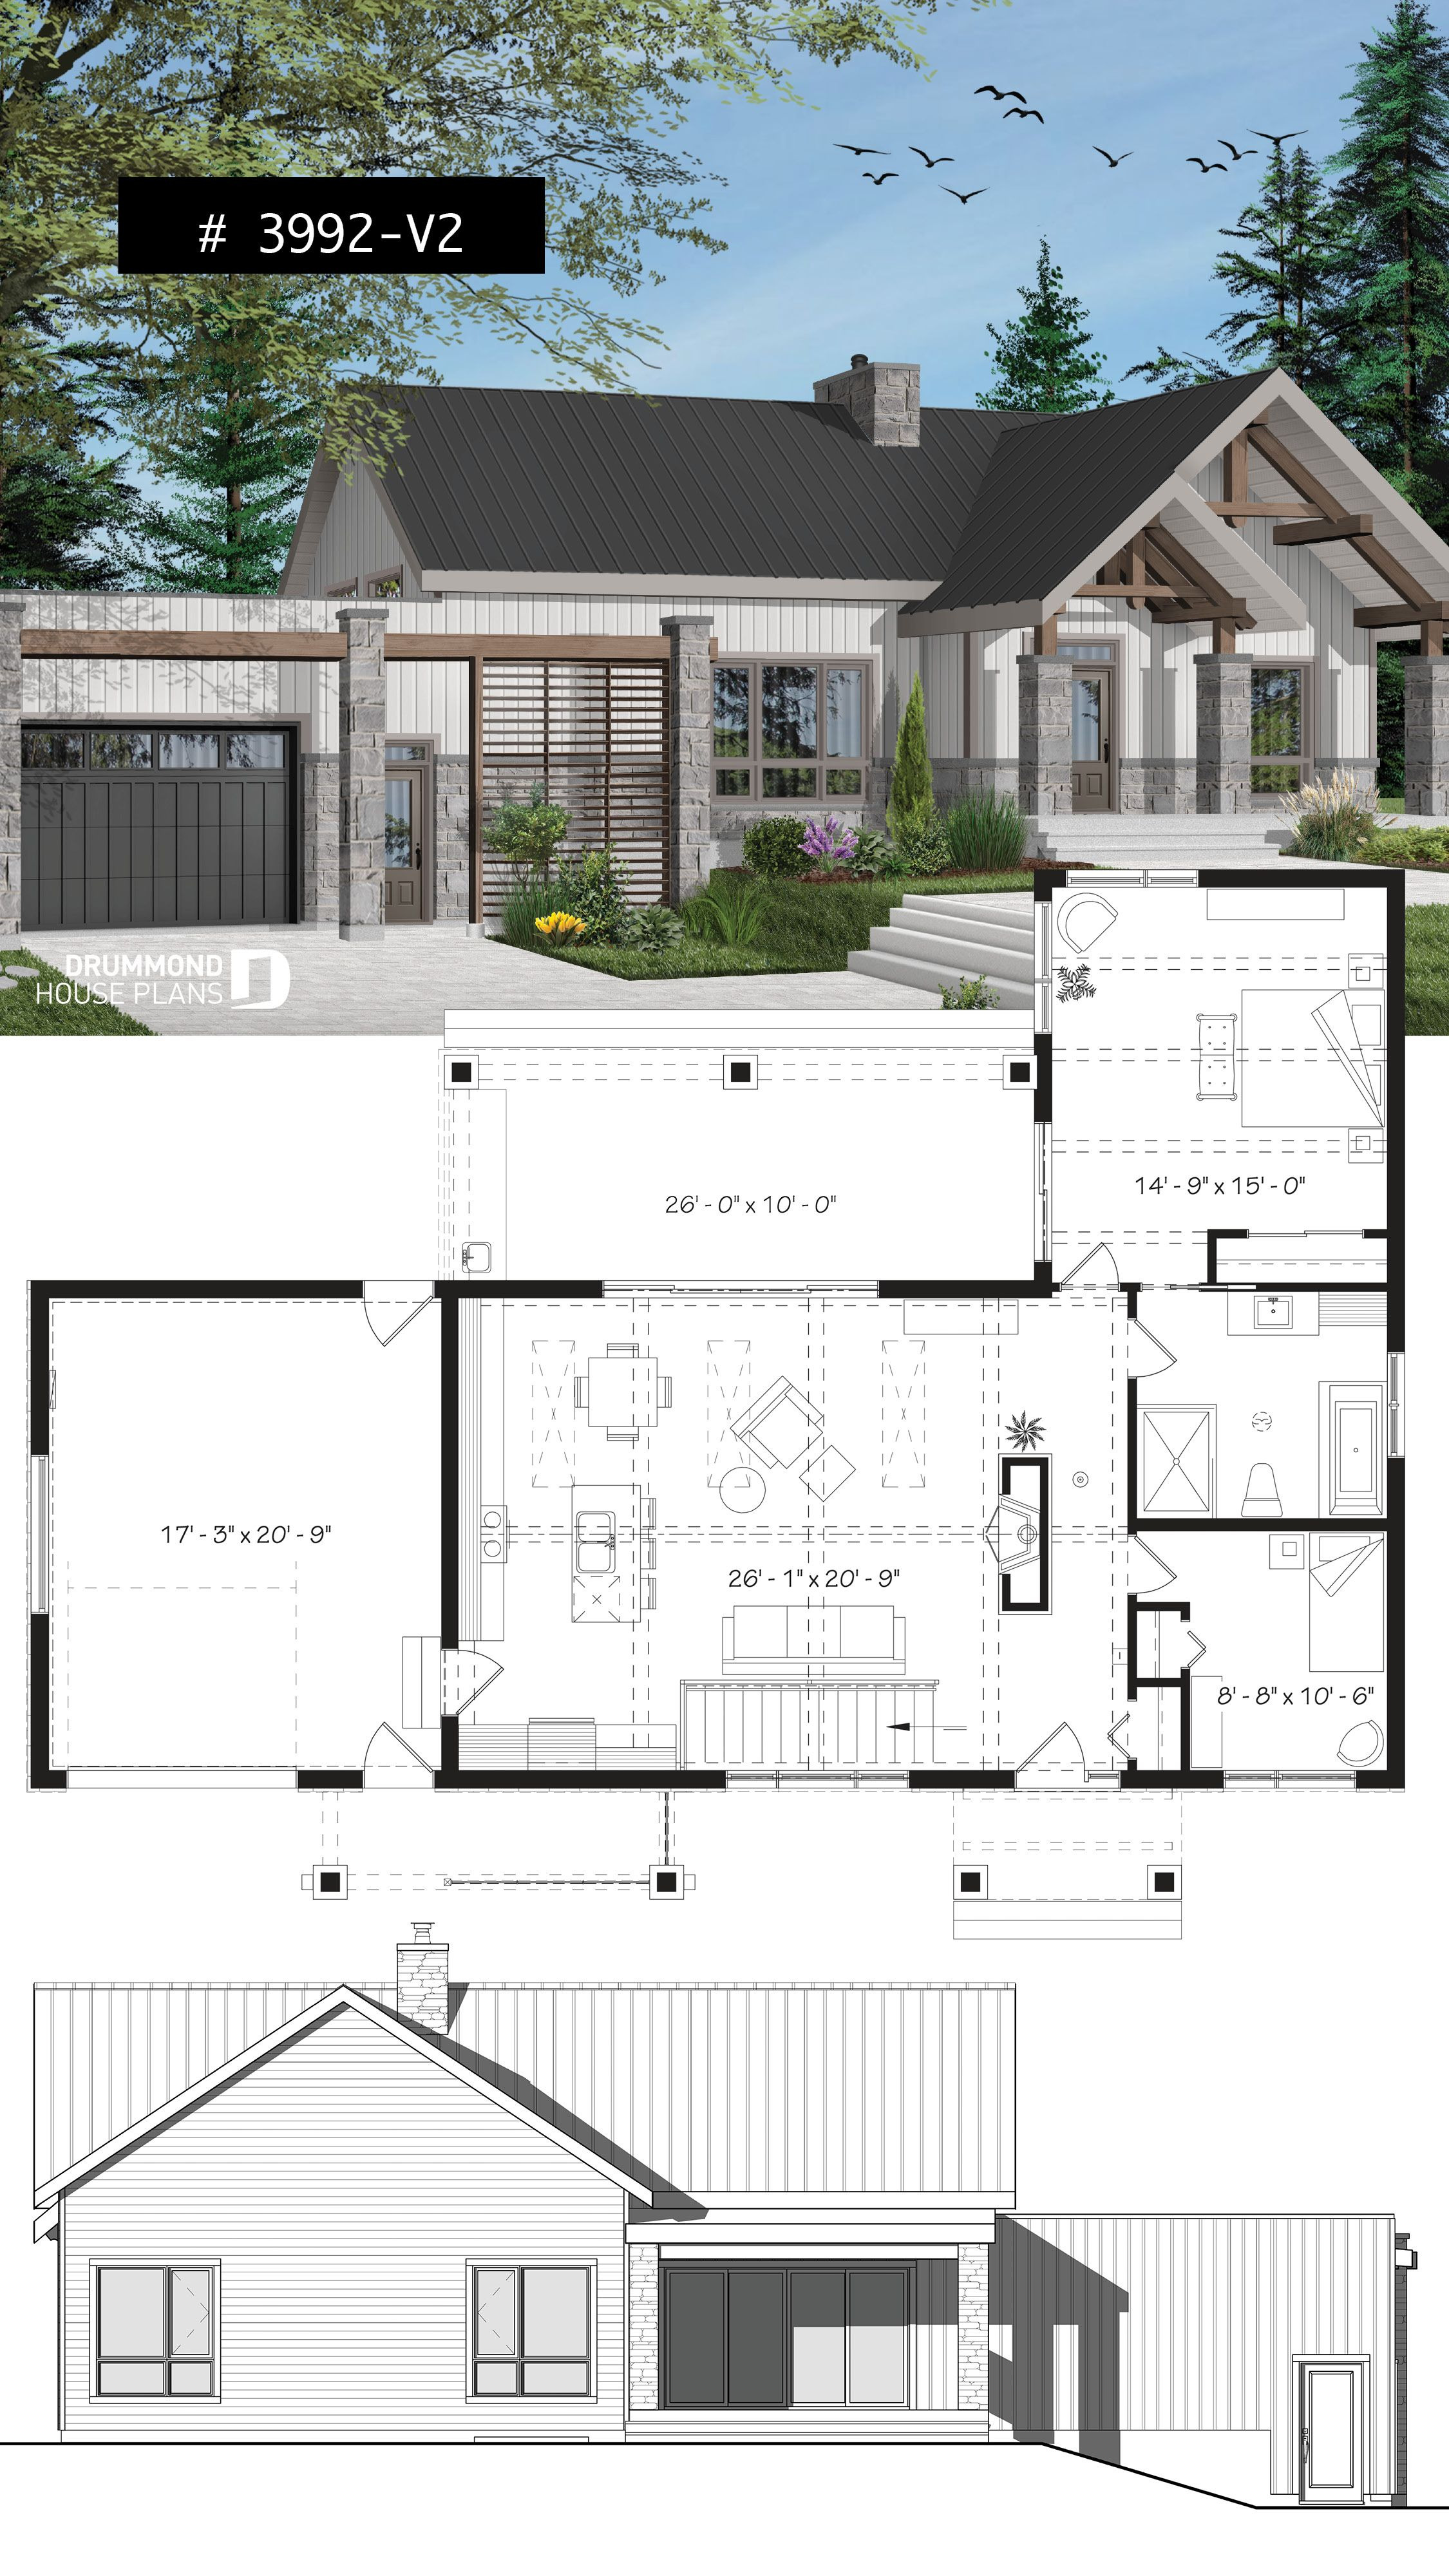 Small Open Concept Floor Plans Best Of House Plan Olympe 3 No 3992 V2